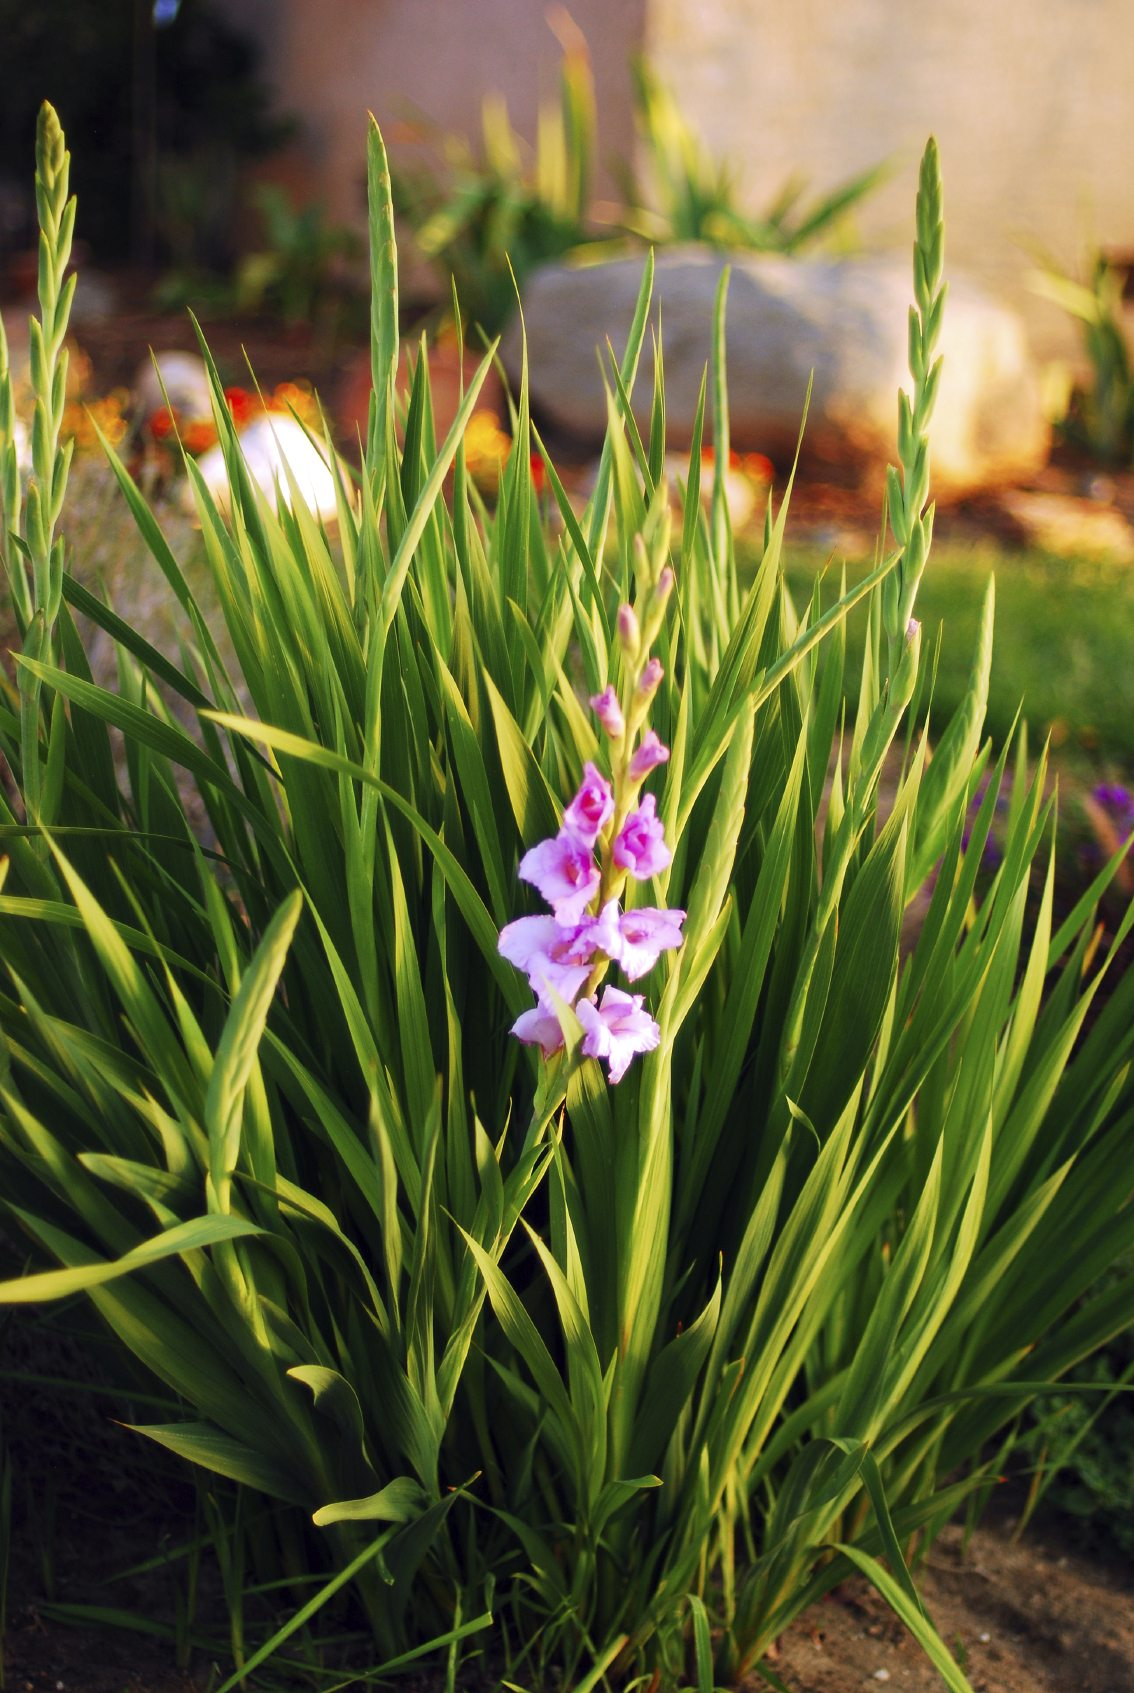 Pruning Back Gladiolus – When And How To Trim Gladiolus Leaves